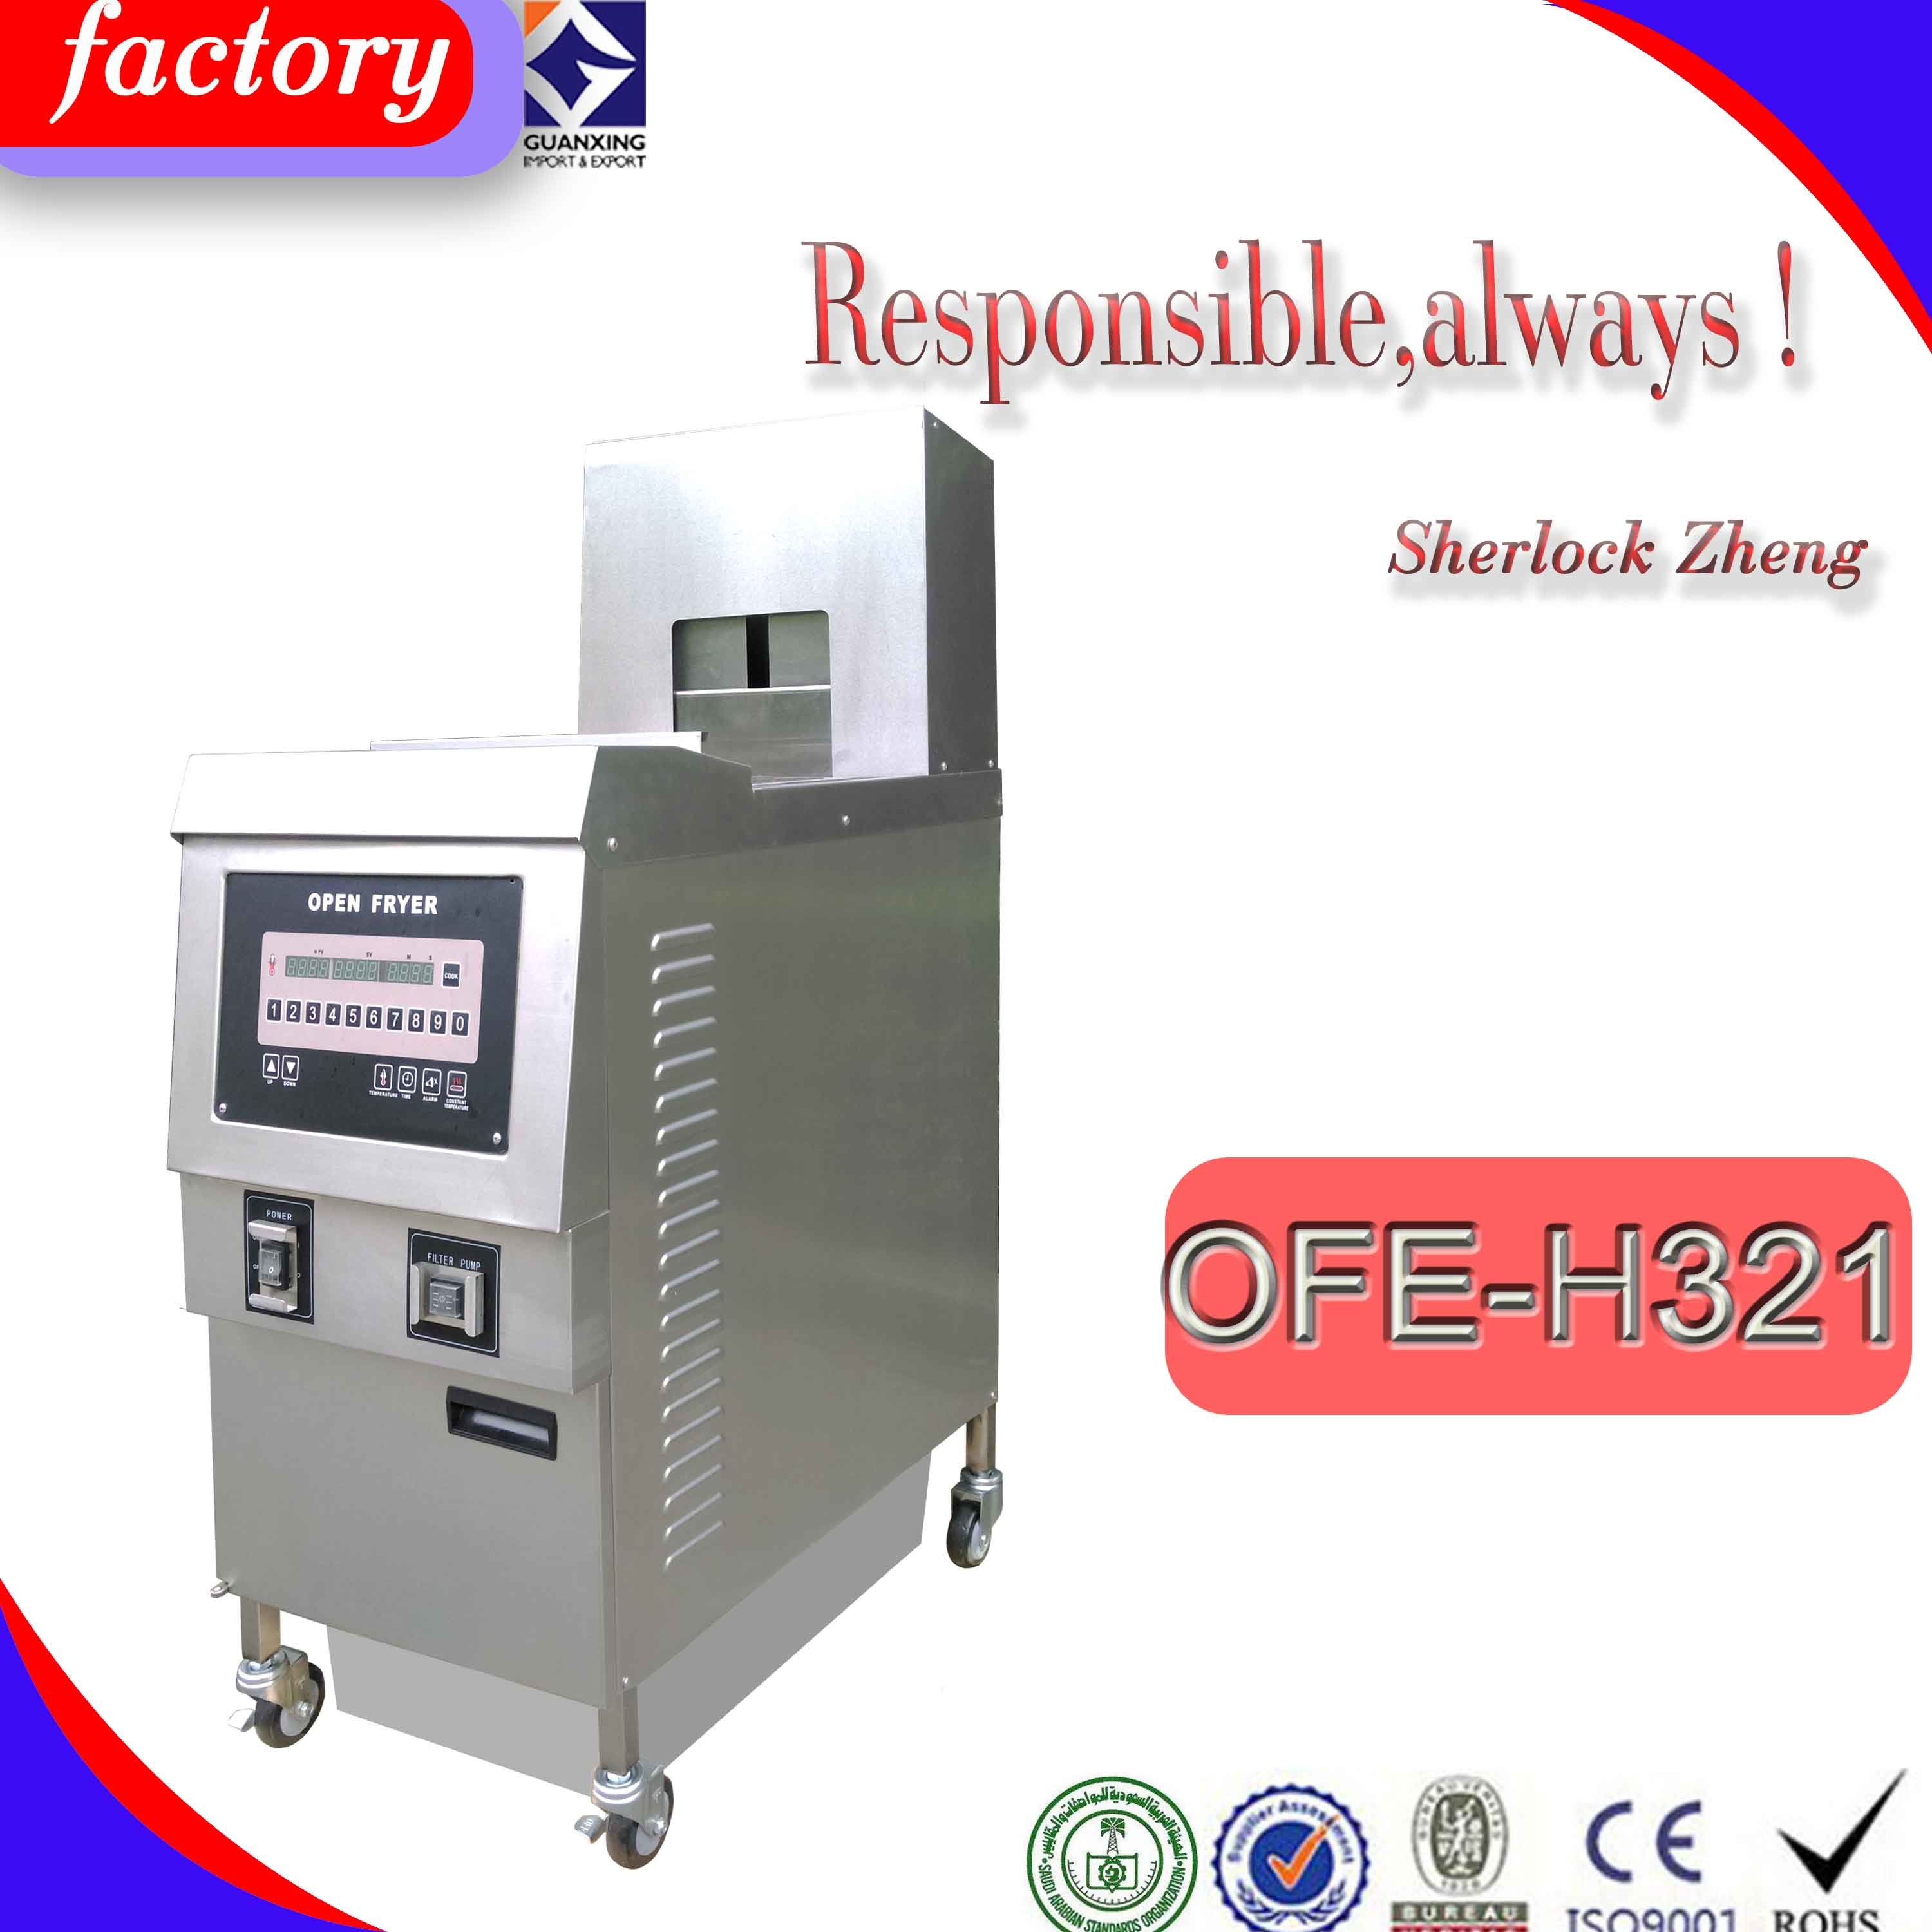 Ofe-H321 Electric French Fries Frying Machine for Fast Food Restaurant|